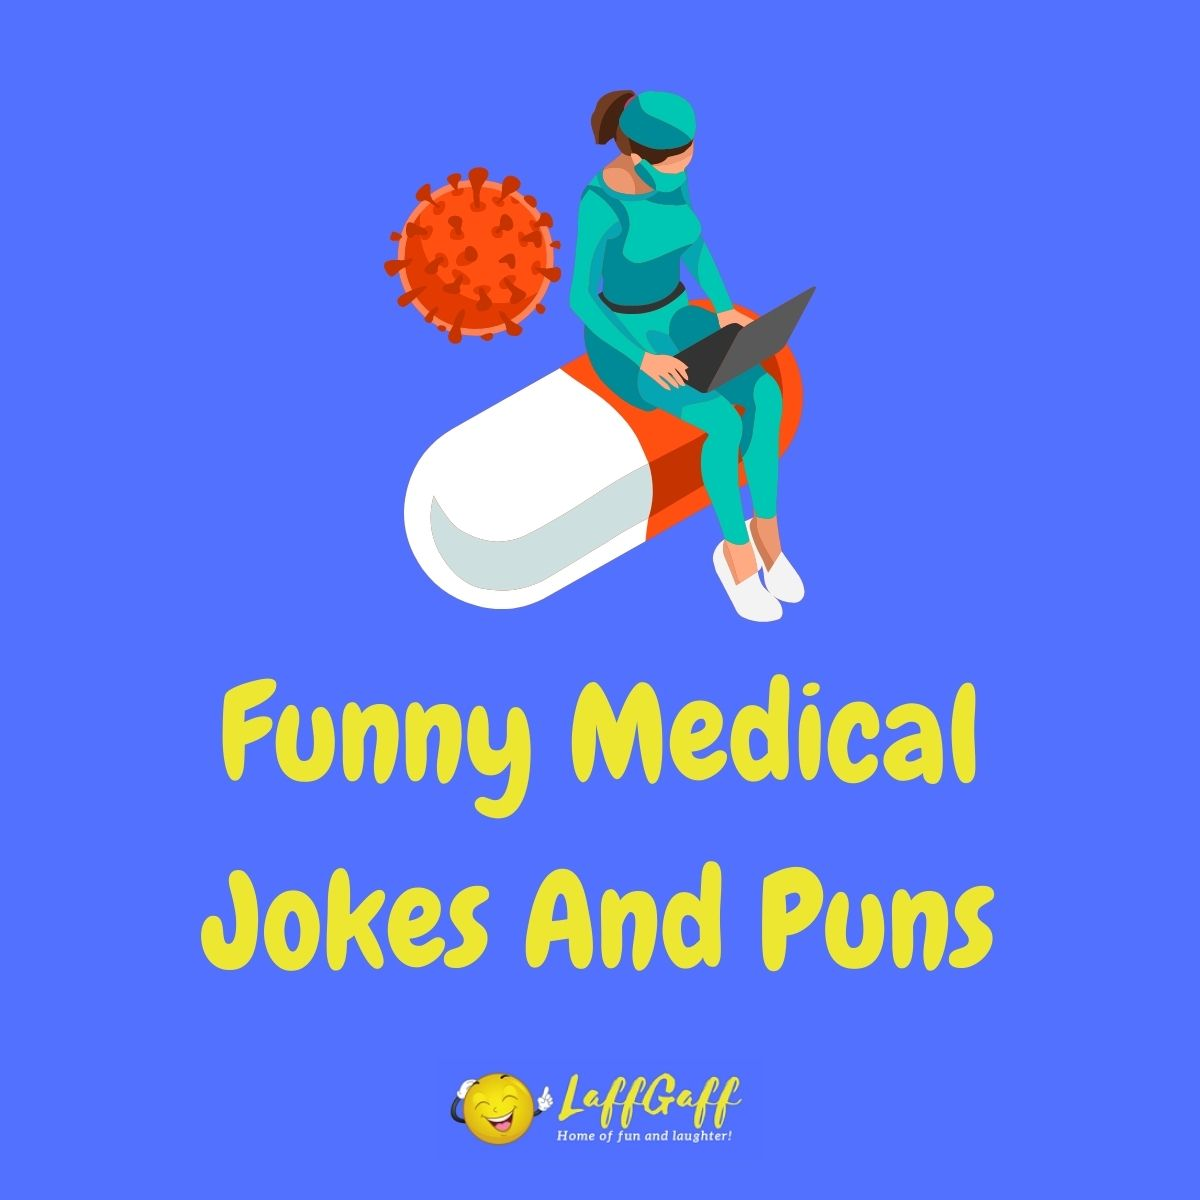 Featured image for a page of funny medical jokes and puns.